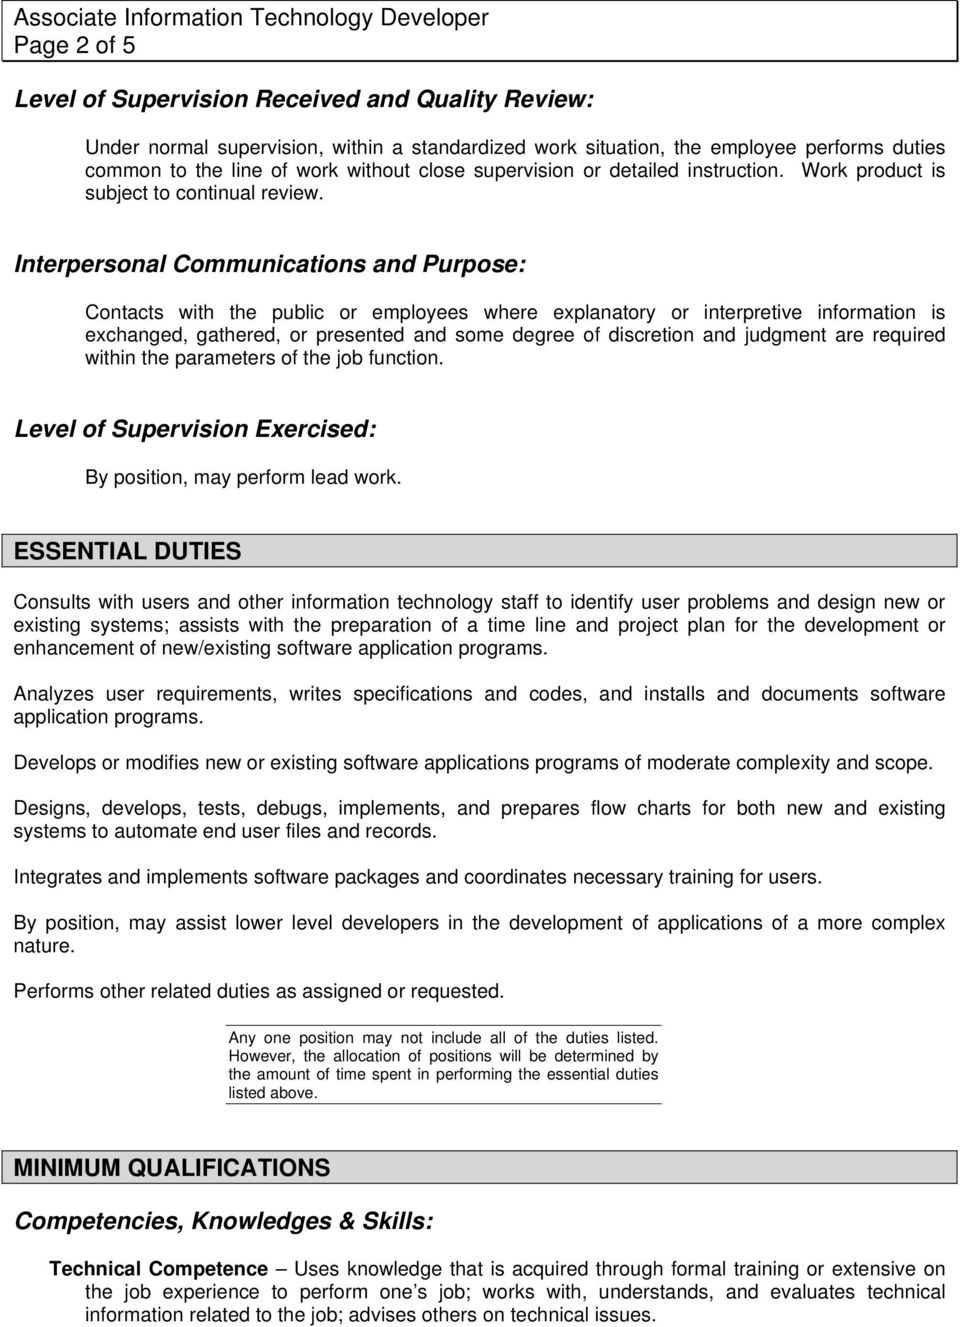 Interpersonal Communications and Purpose: Contacts with the public or employees where explanatory or interpretive information is exchanged, gathered, or presented and some degree of discretion and